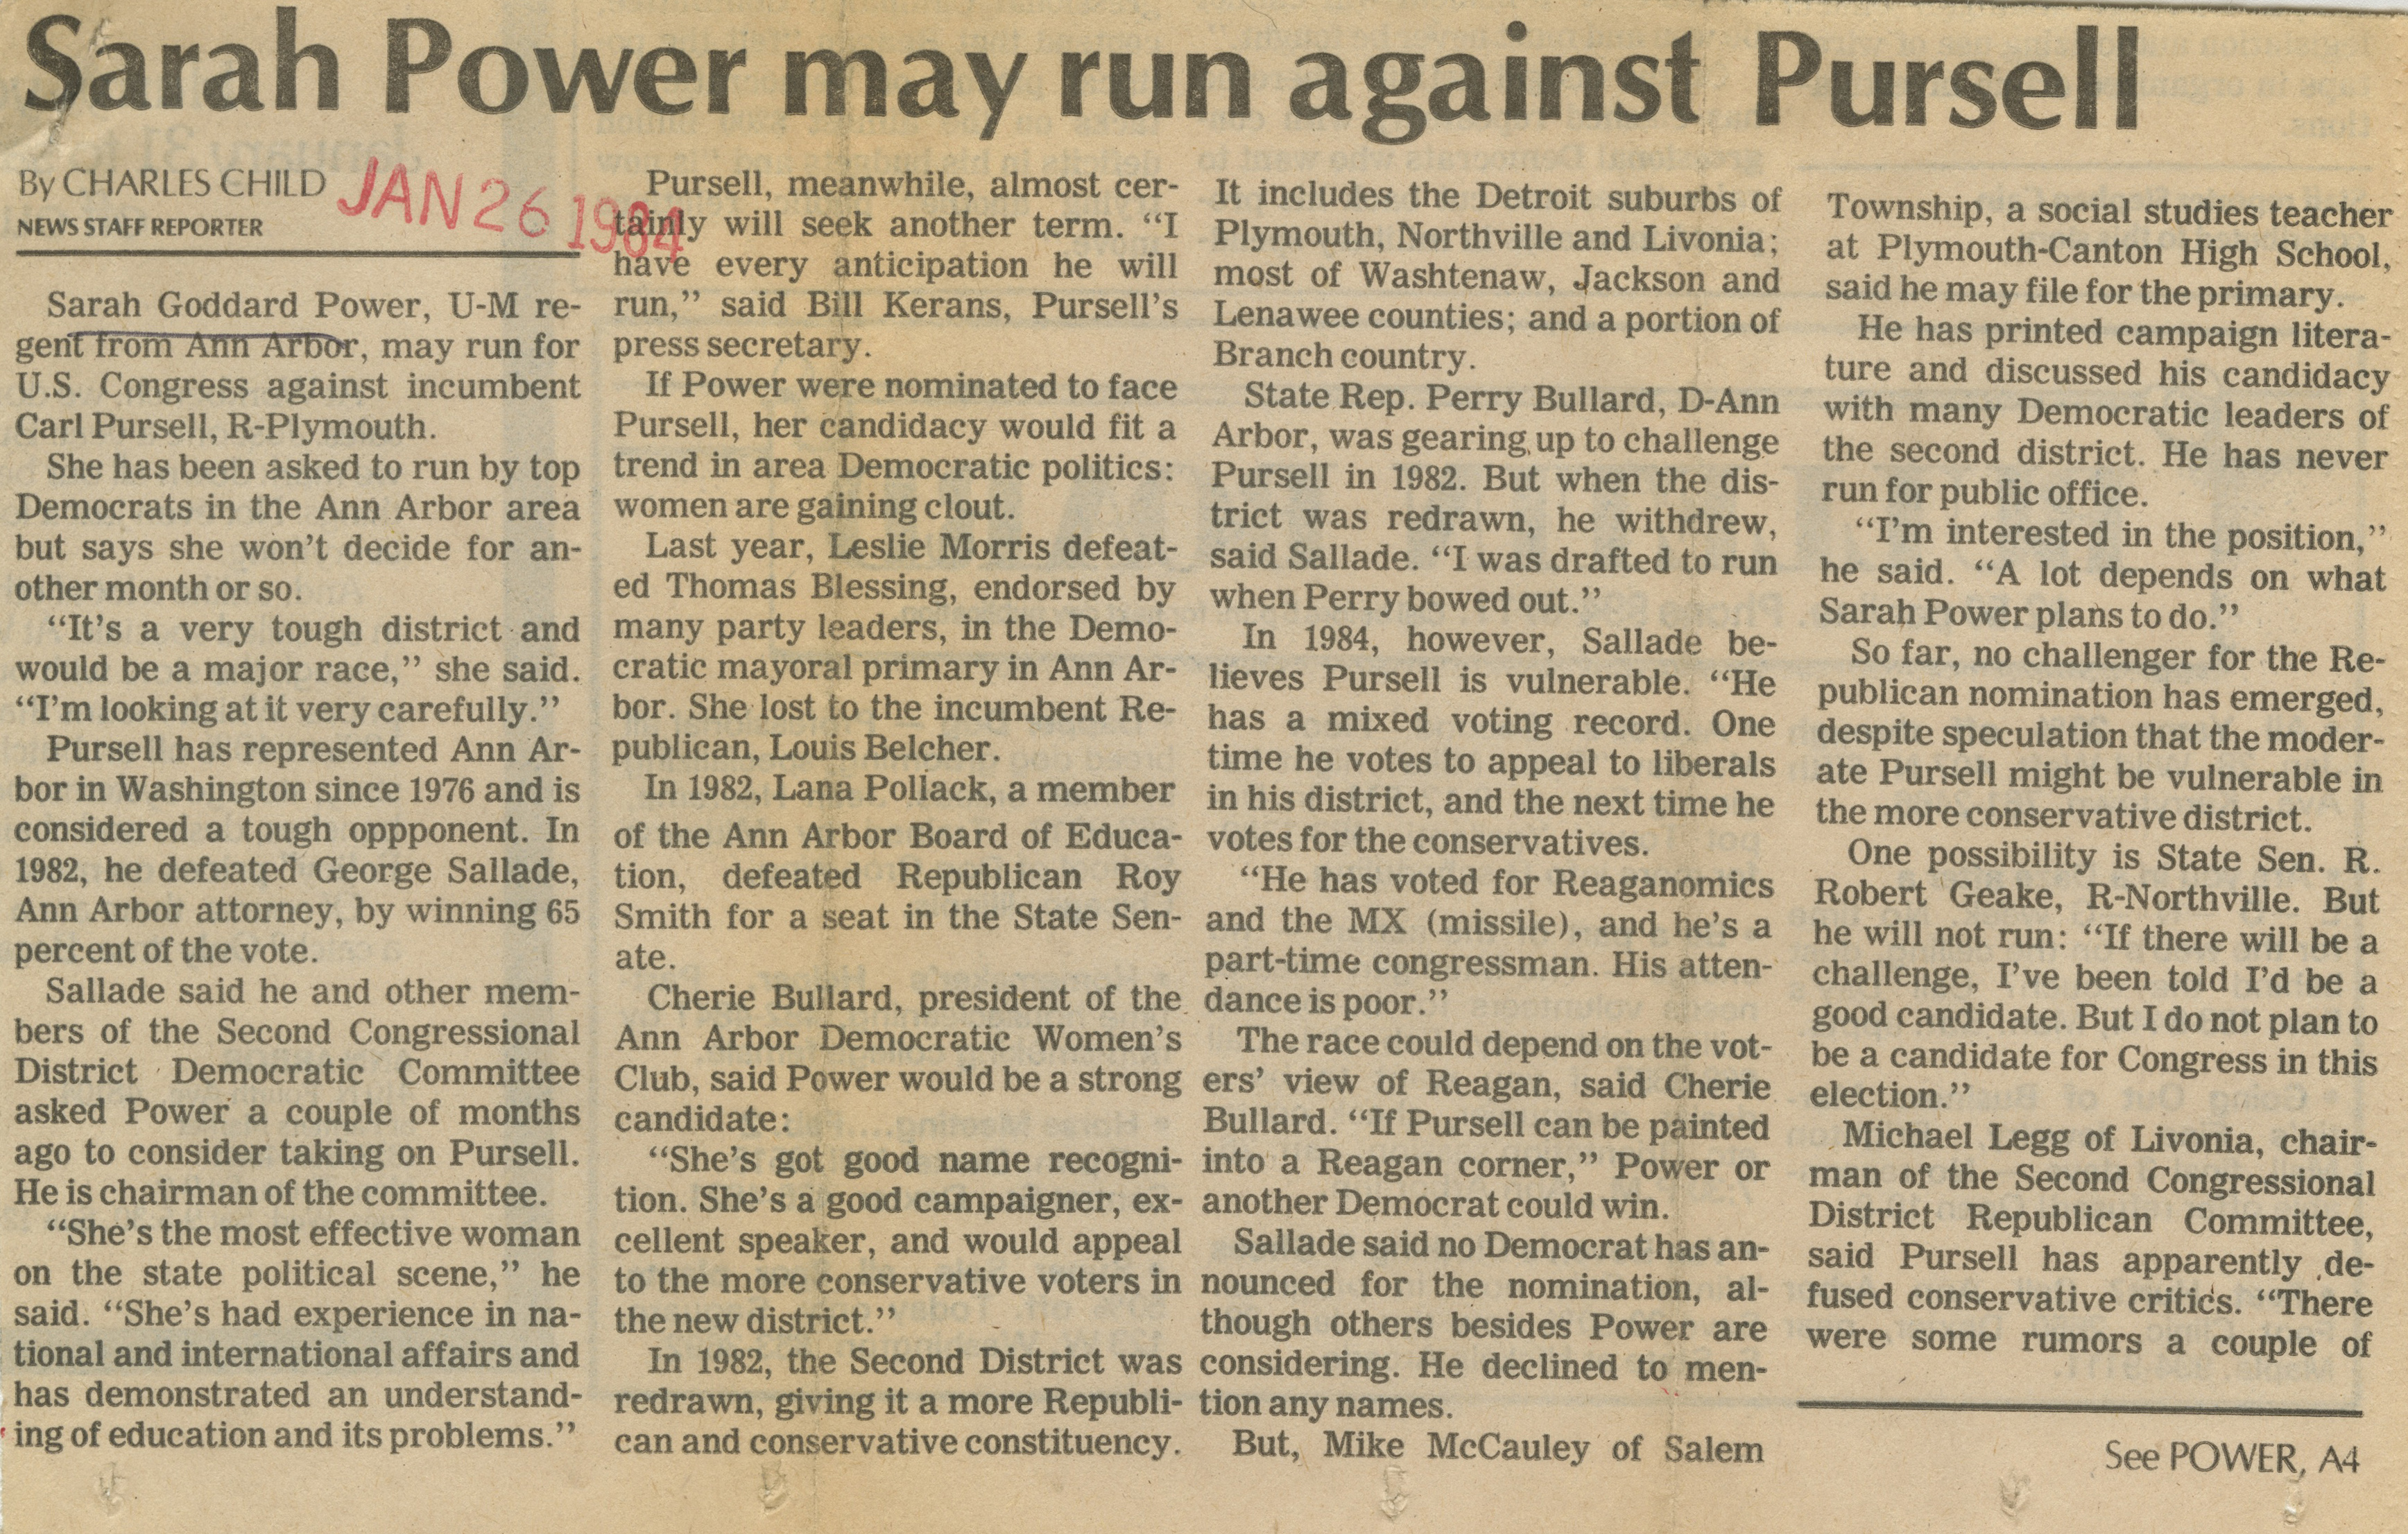 Sarah Power May Run Against Pursell image